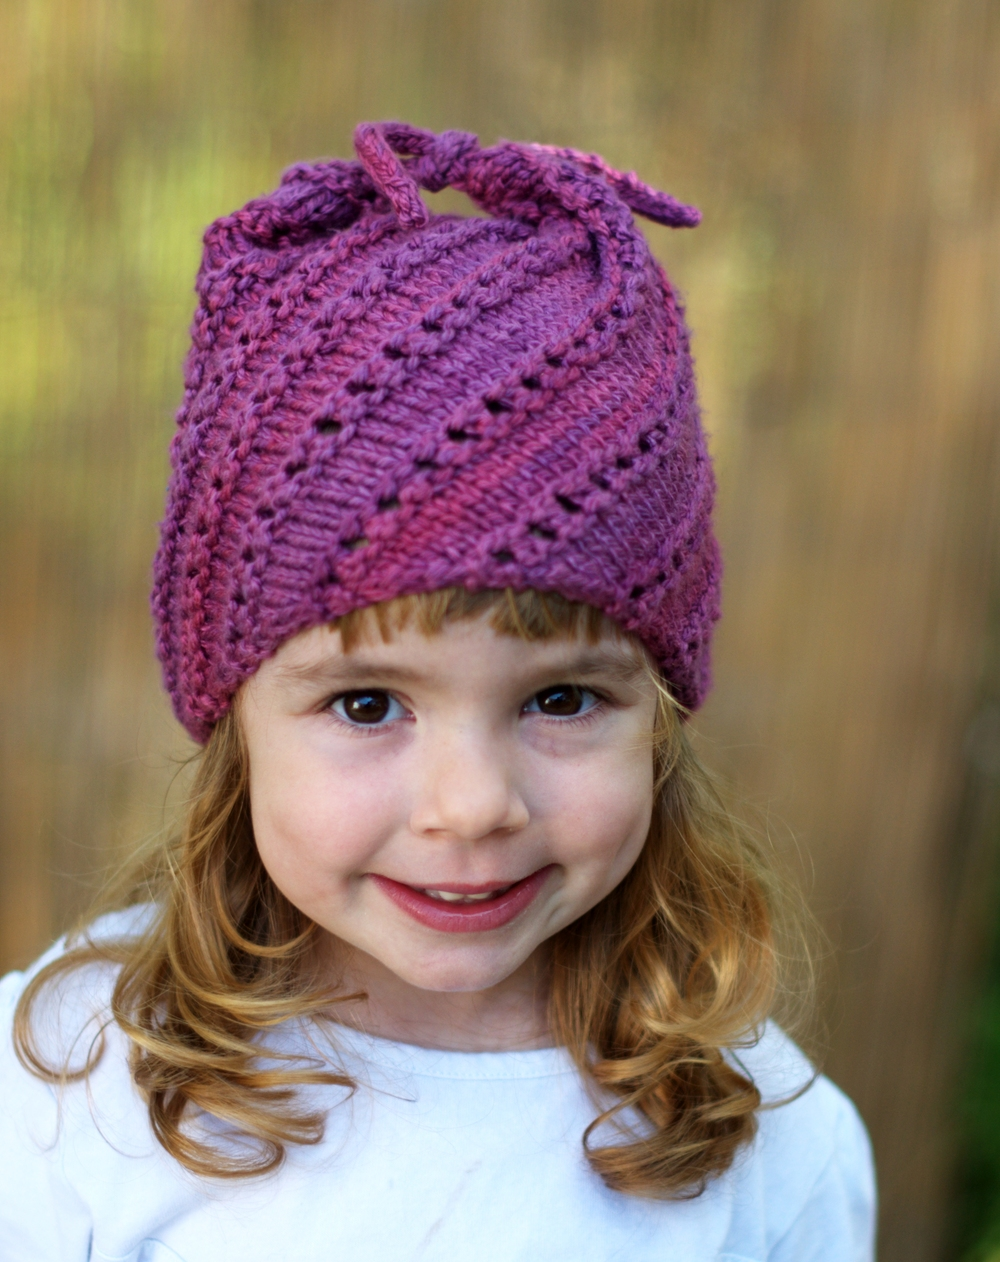 Moochie sideways knit childs Hat knitting pattern